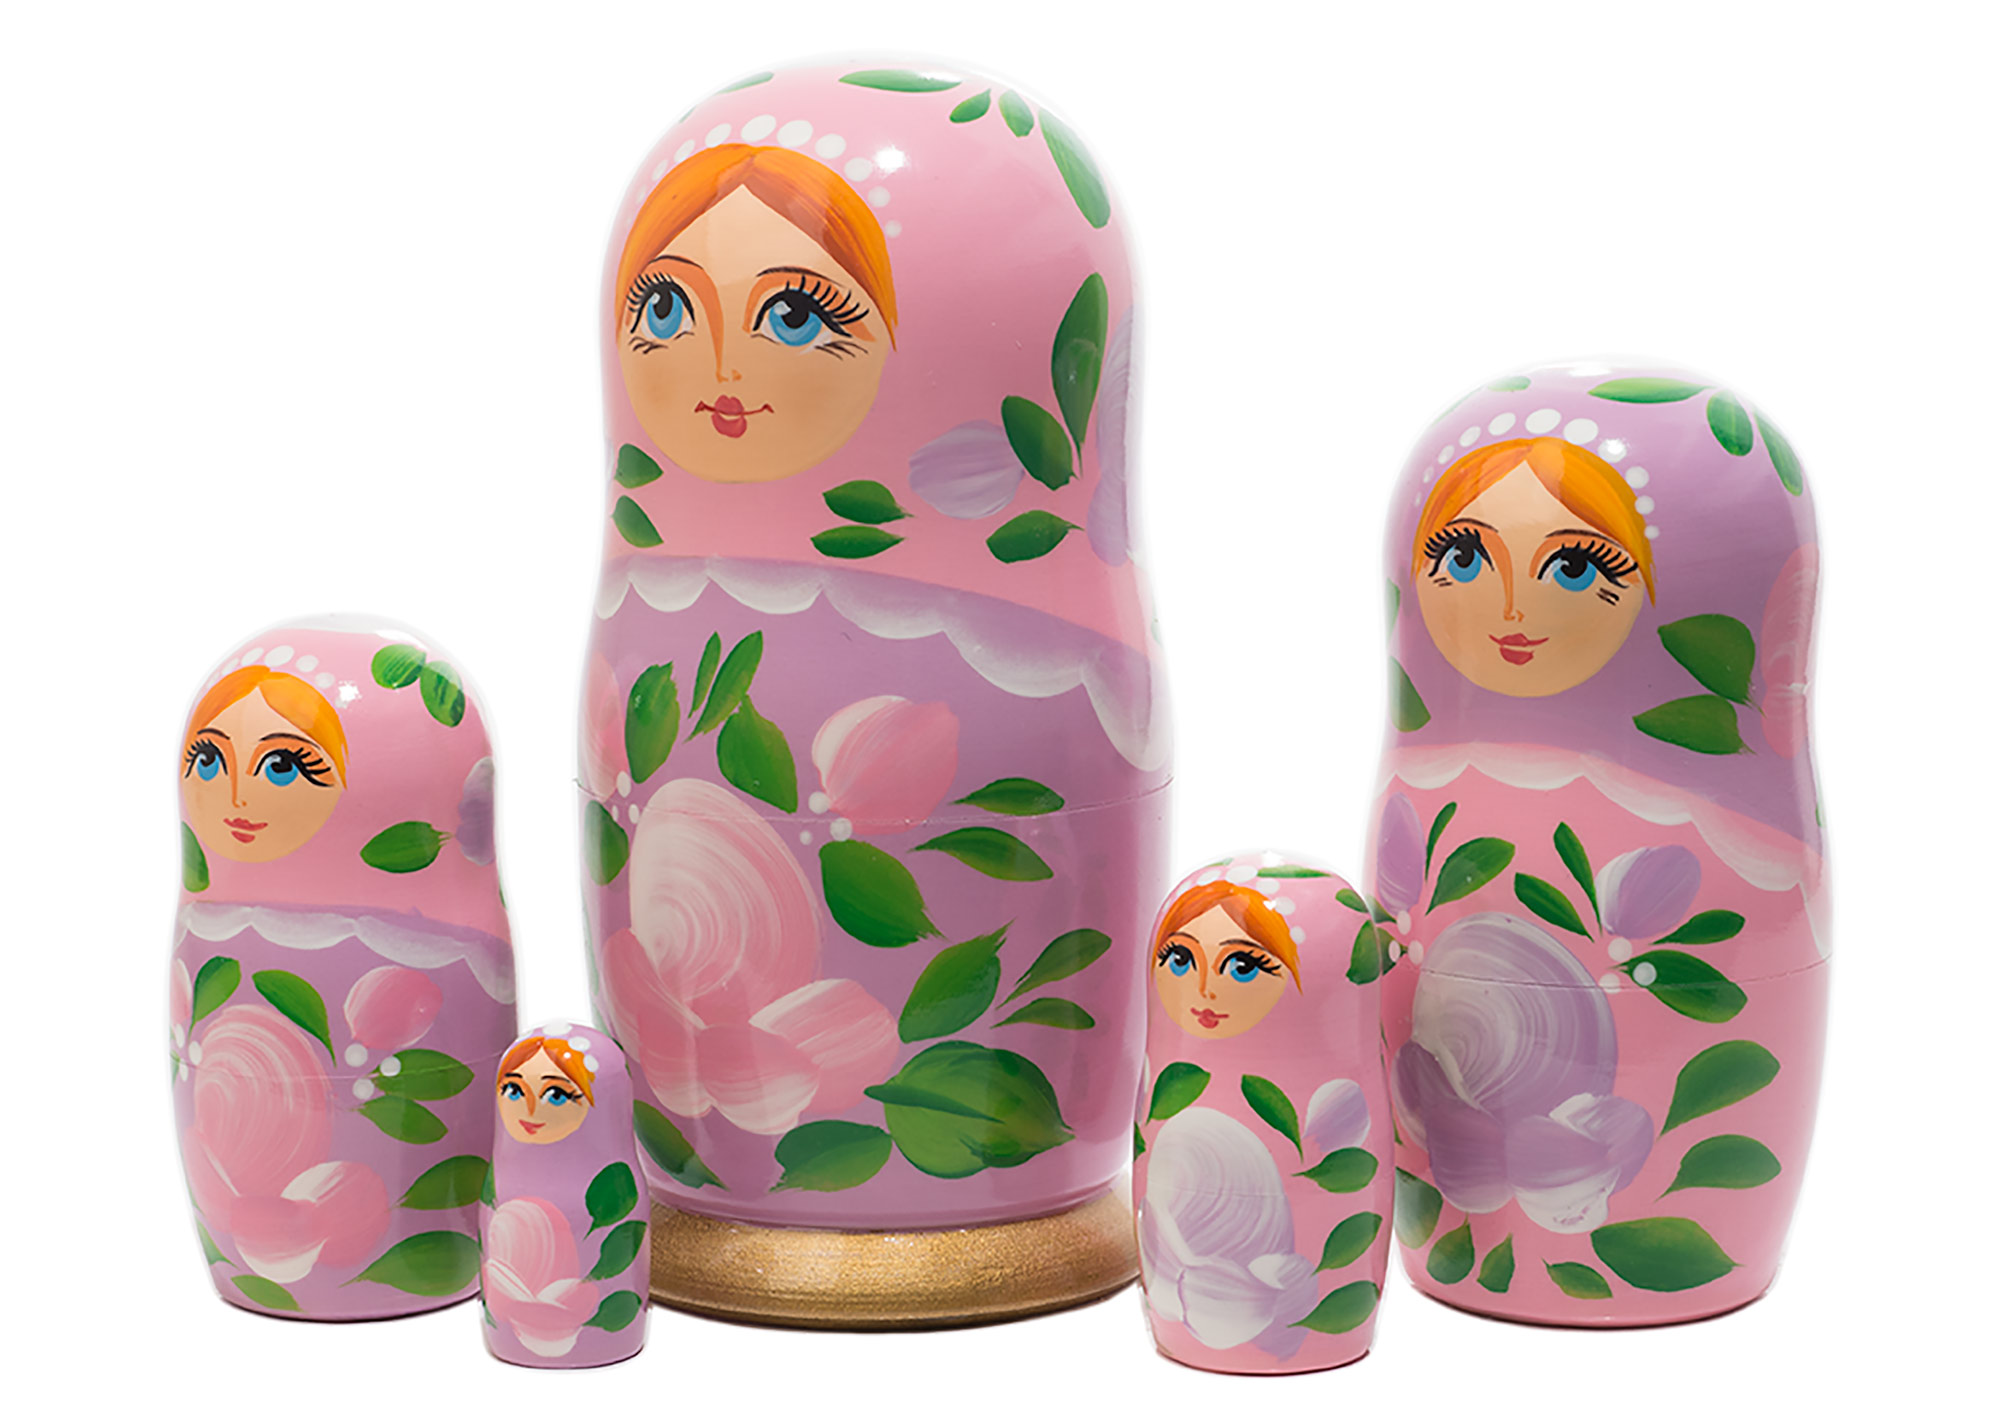 "Buy Pink Classical Nesting Doll 5pc./6"" - Russian Doll Inside A Doll at GoldenCockerel.com"